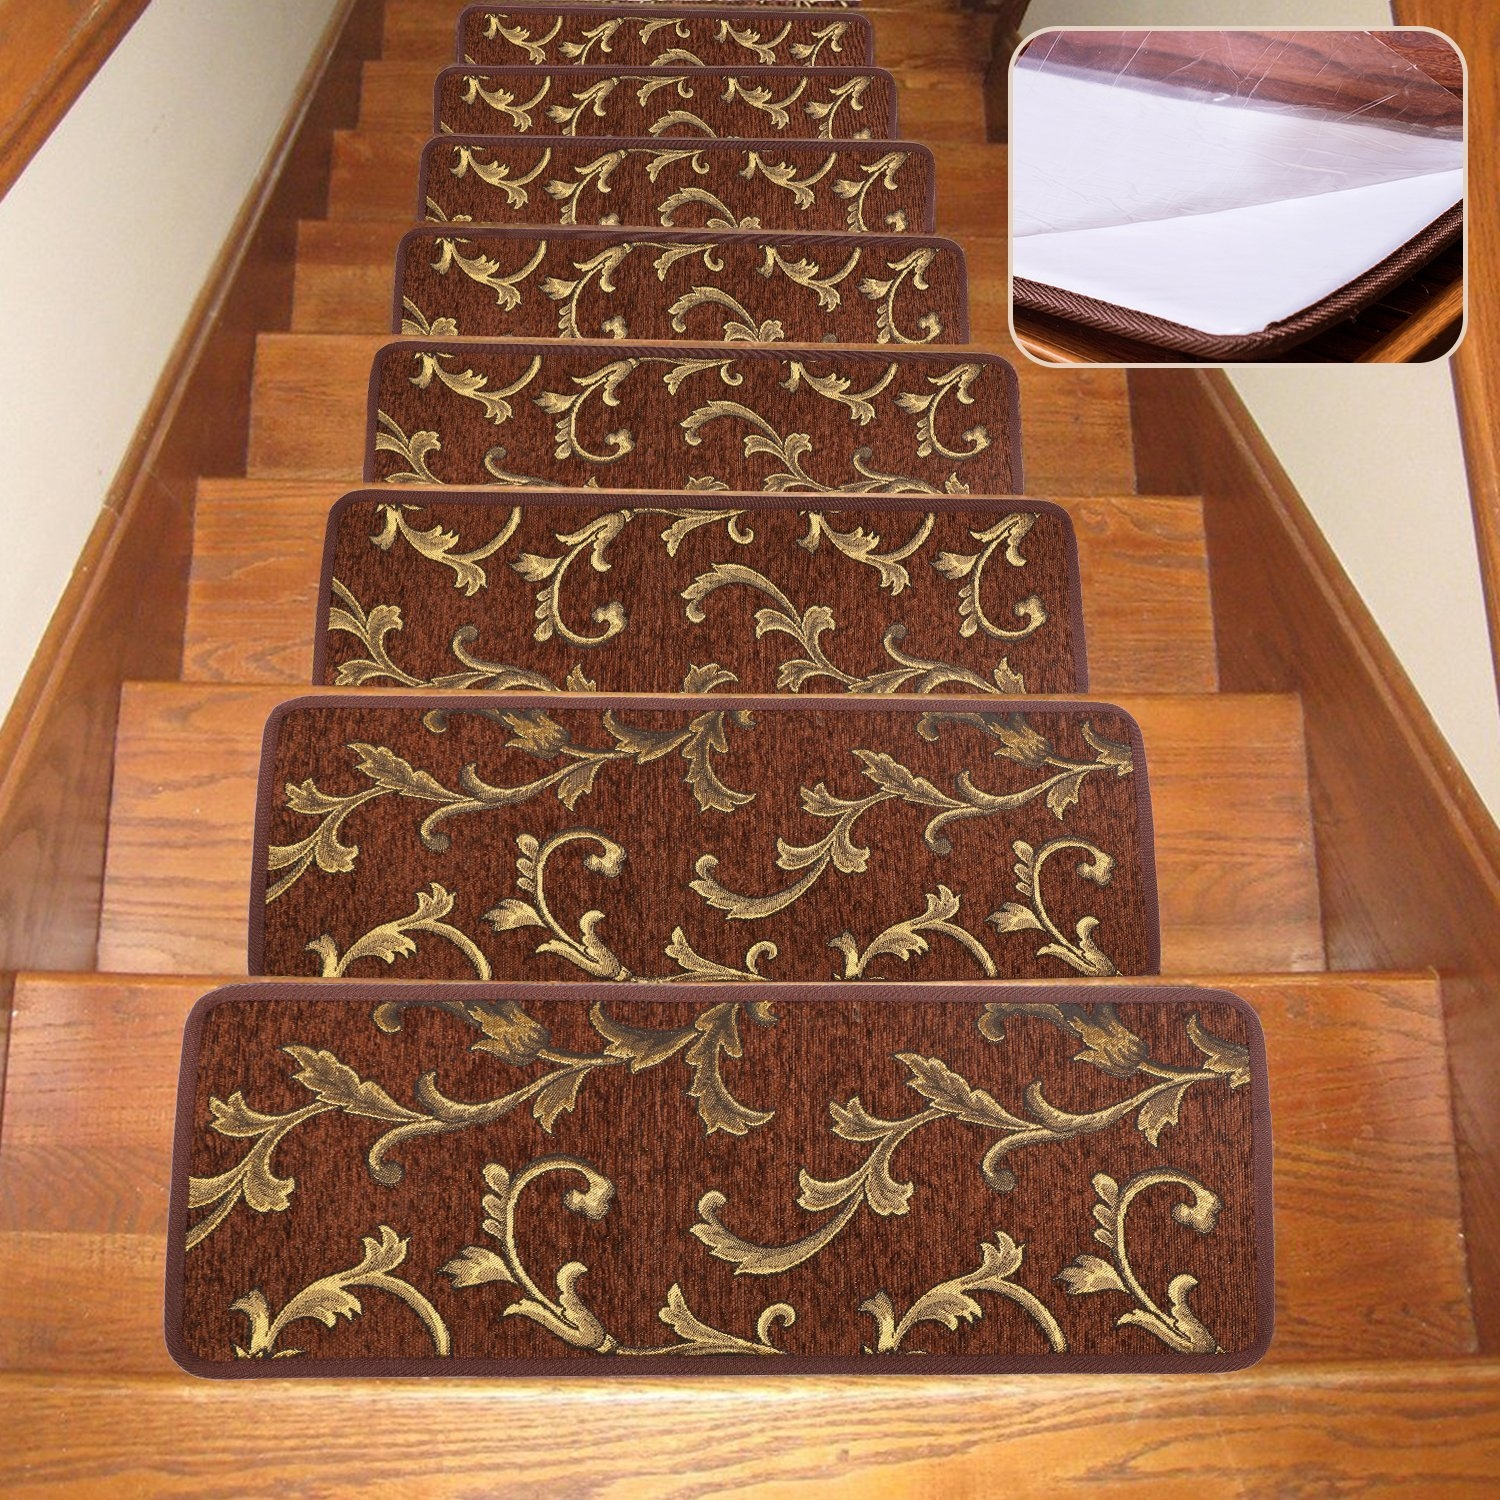 Soloom Non Slip Stair Treads Carpet Indoor Set Of 13 Blended Intended For Stair Tread Rug Sets (#18 of 20)